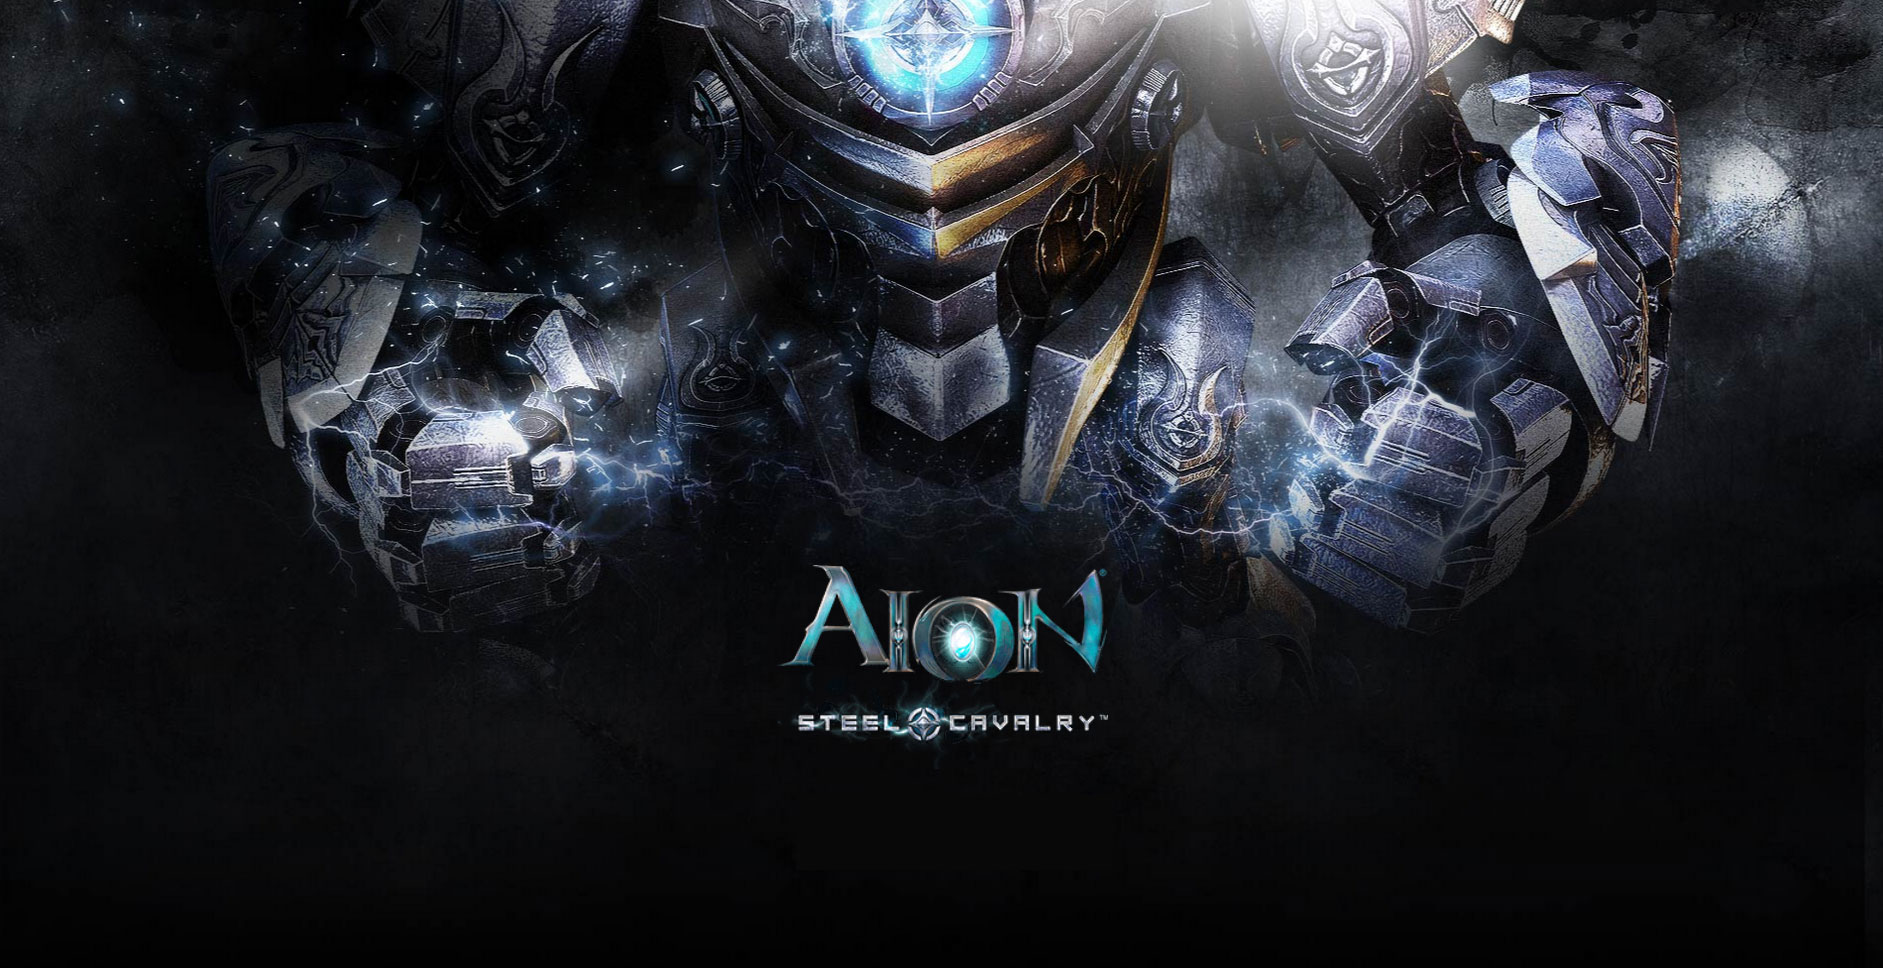 aion 4.5 steel cavalry